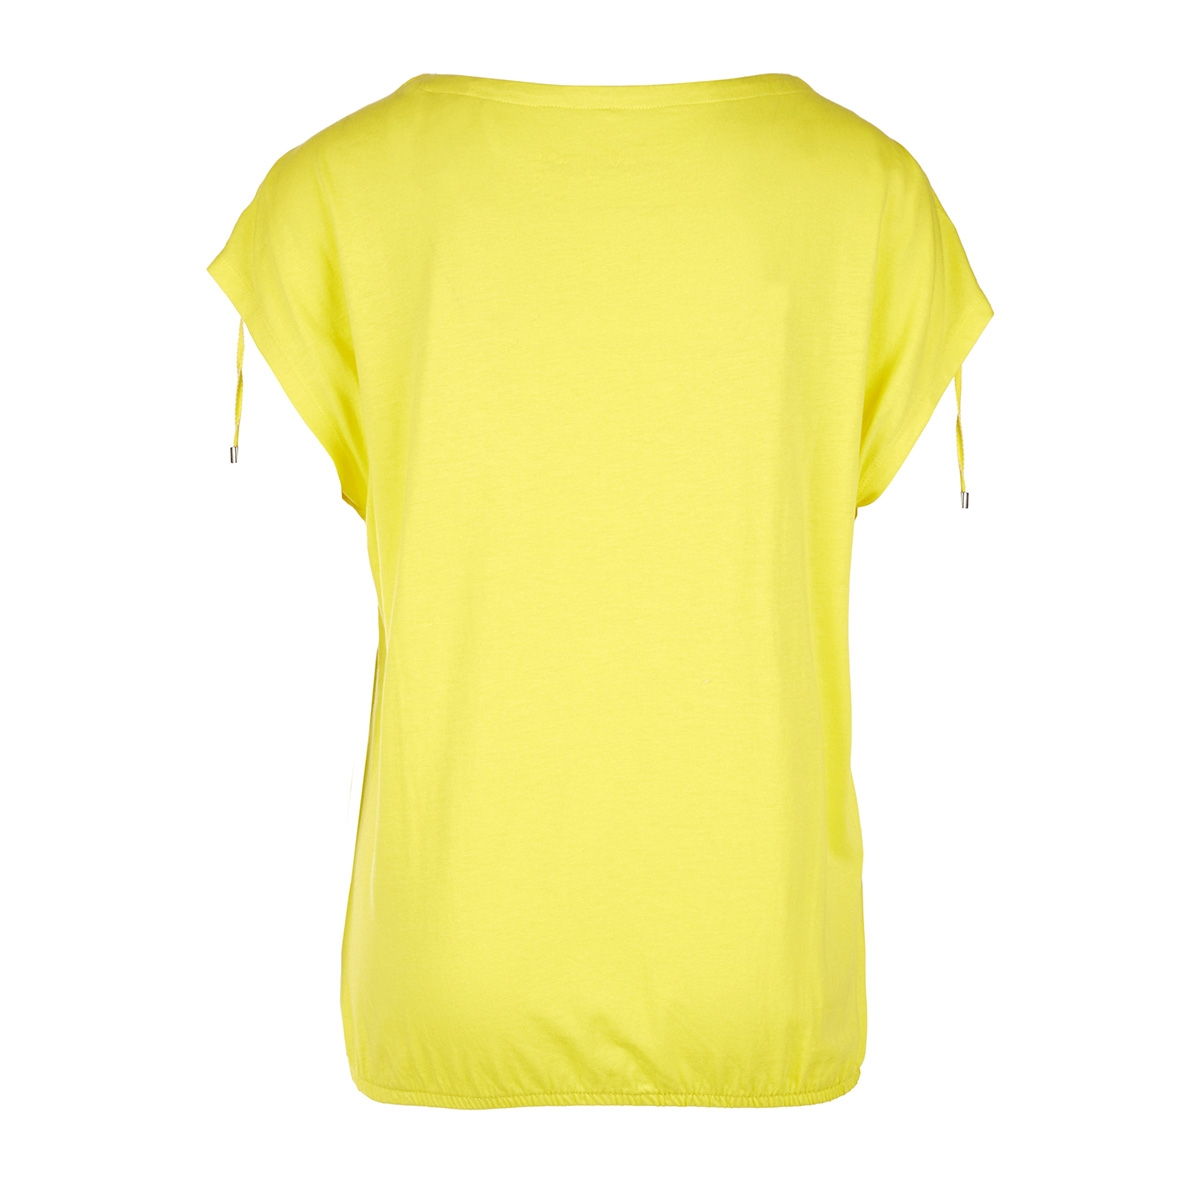 t shirt 04899325347 s.oliver t-shirt 1201